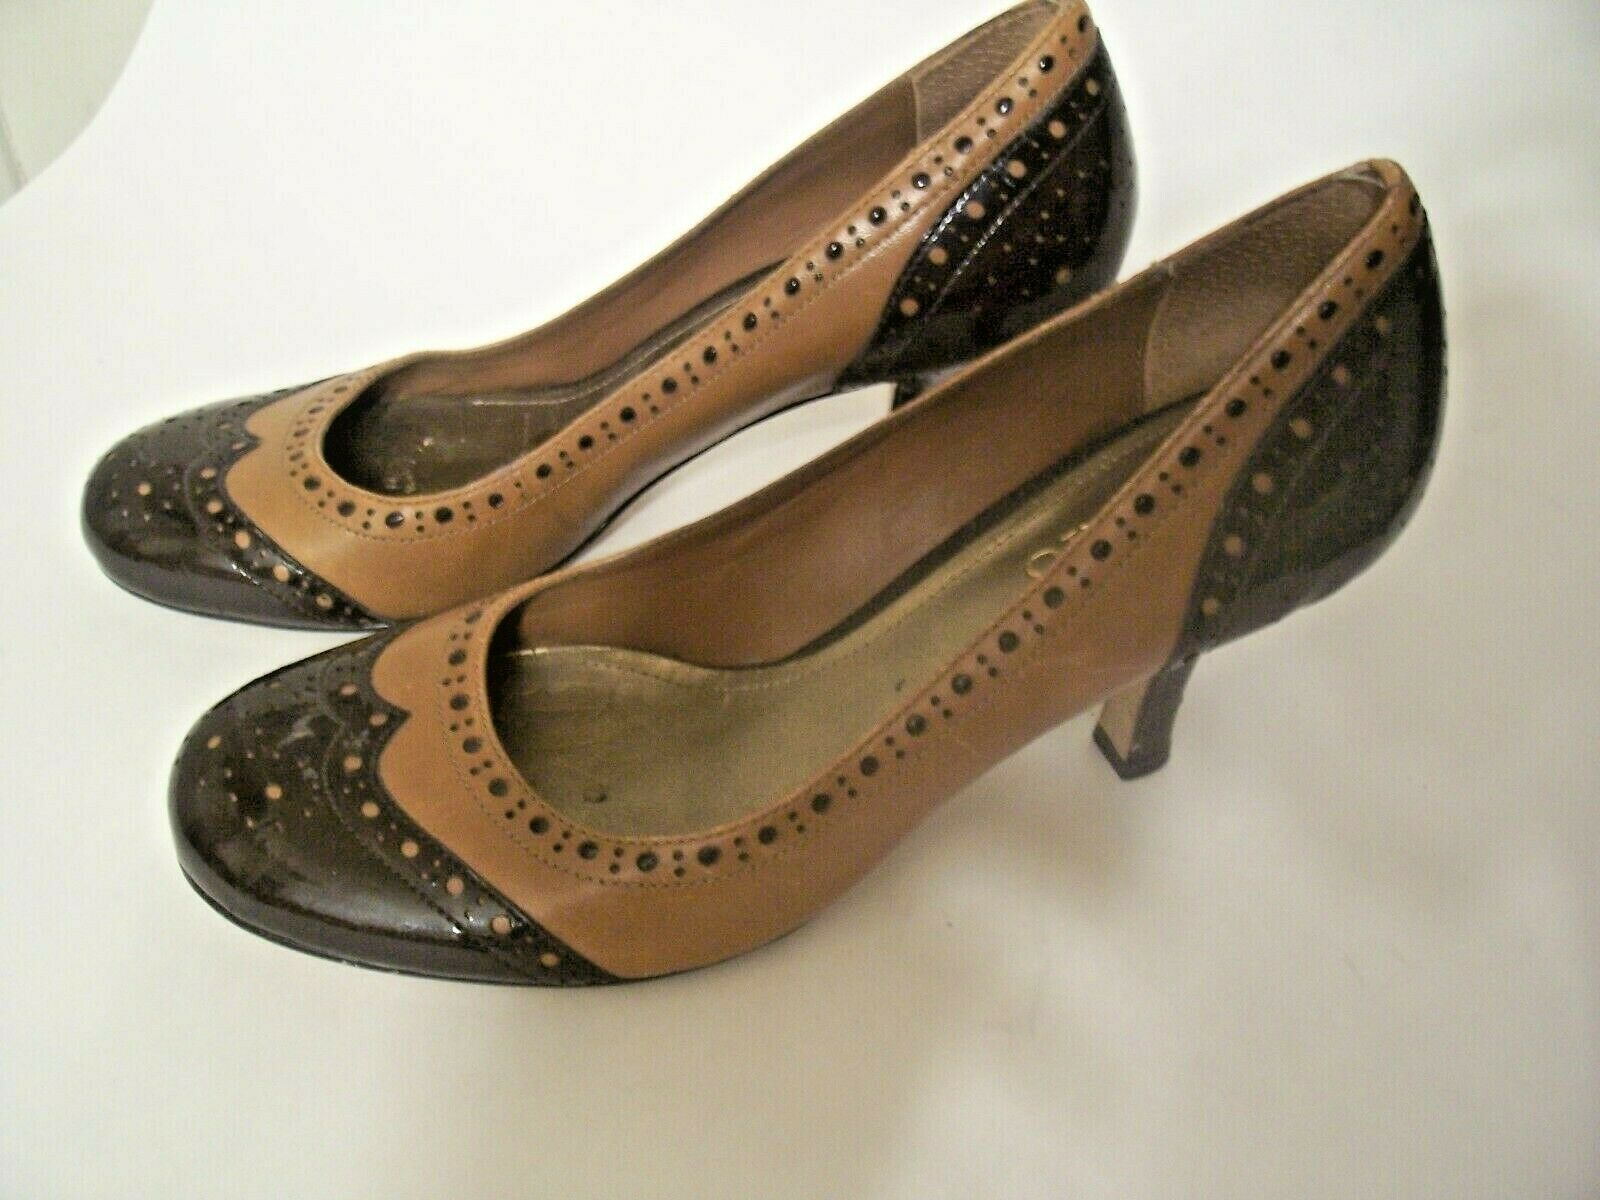 Primary image for FRANCO SARTO Seesaw Oxford Wingtip Leather Shoes Brown / Tan Size  7.5M  Womens